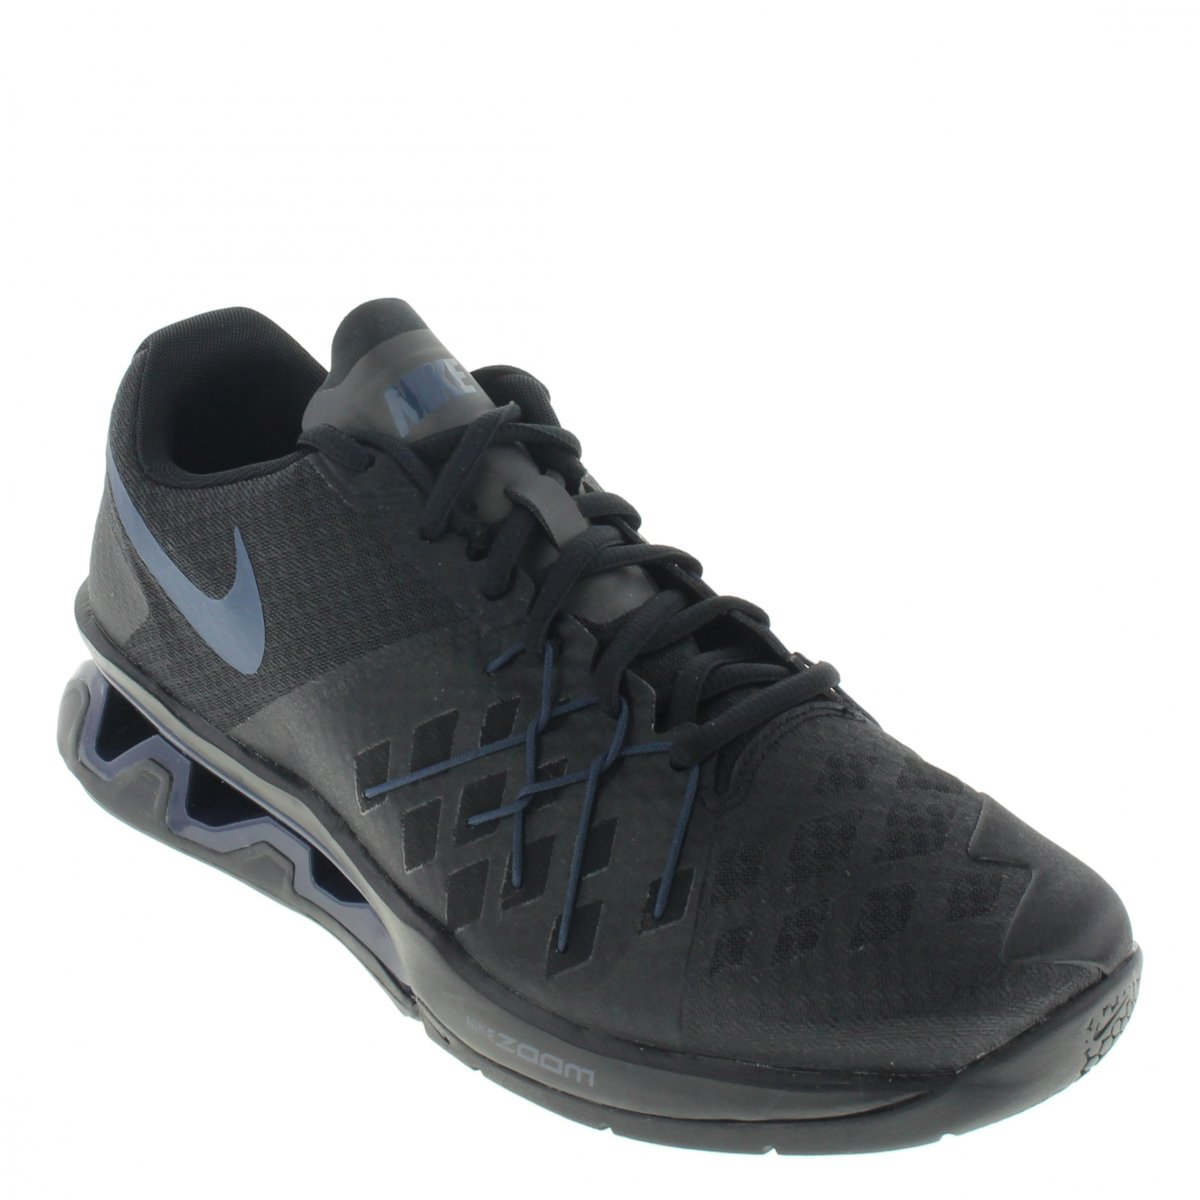 100% authentic ee702 9f526 ... Tenis Nike Reax Lightspeed ii ...